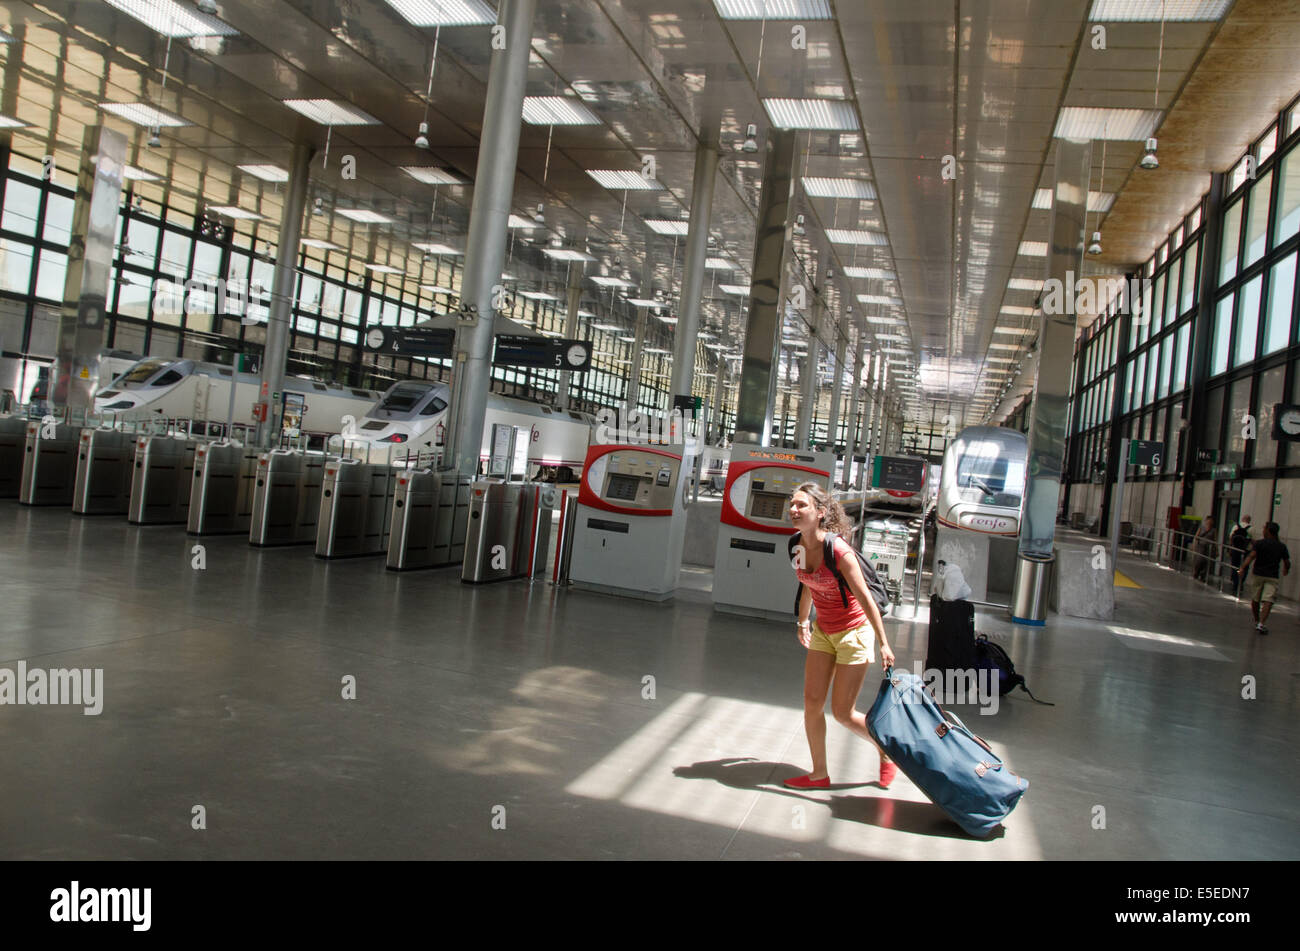 A young female traveller hurries across Cádiz train station with her luggage. - Stock Image